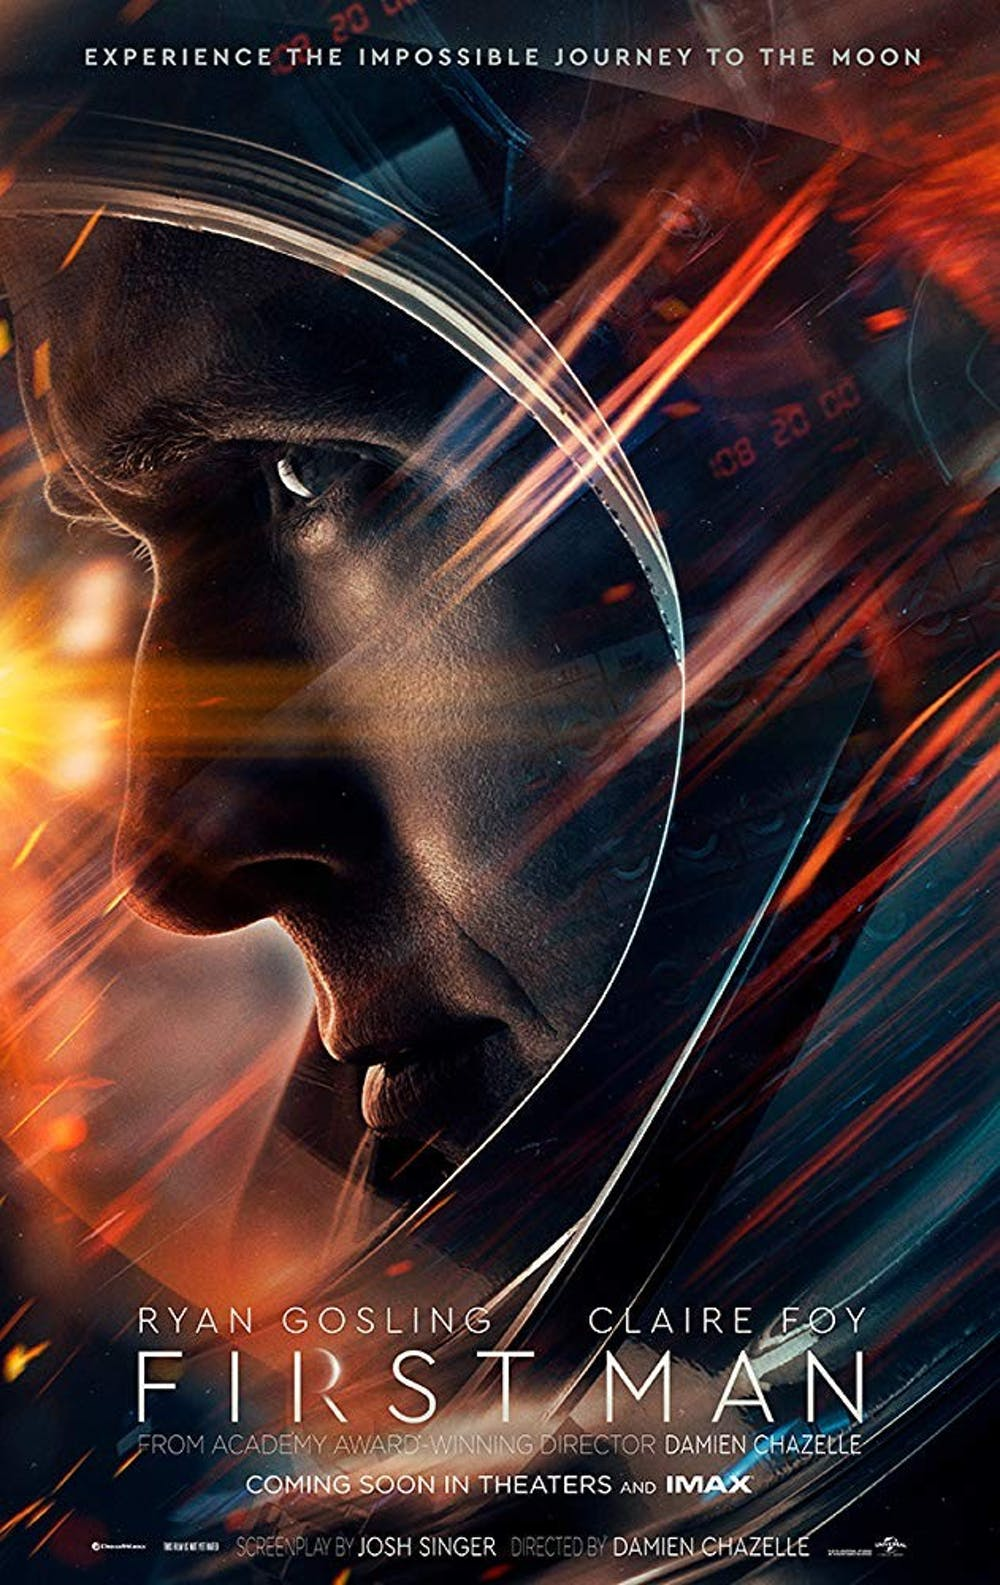 ae-firstman-courtesyofuniversalstudios